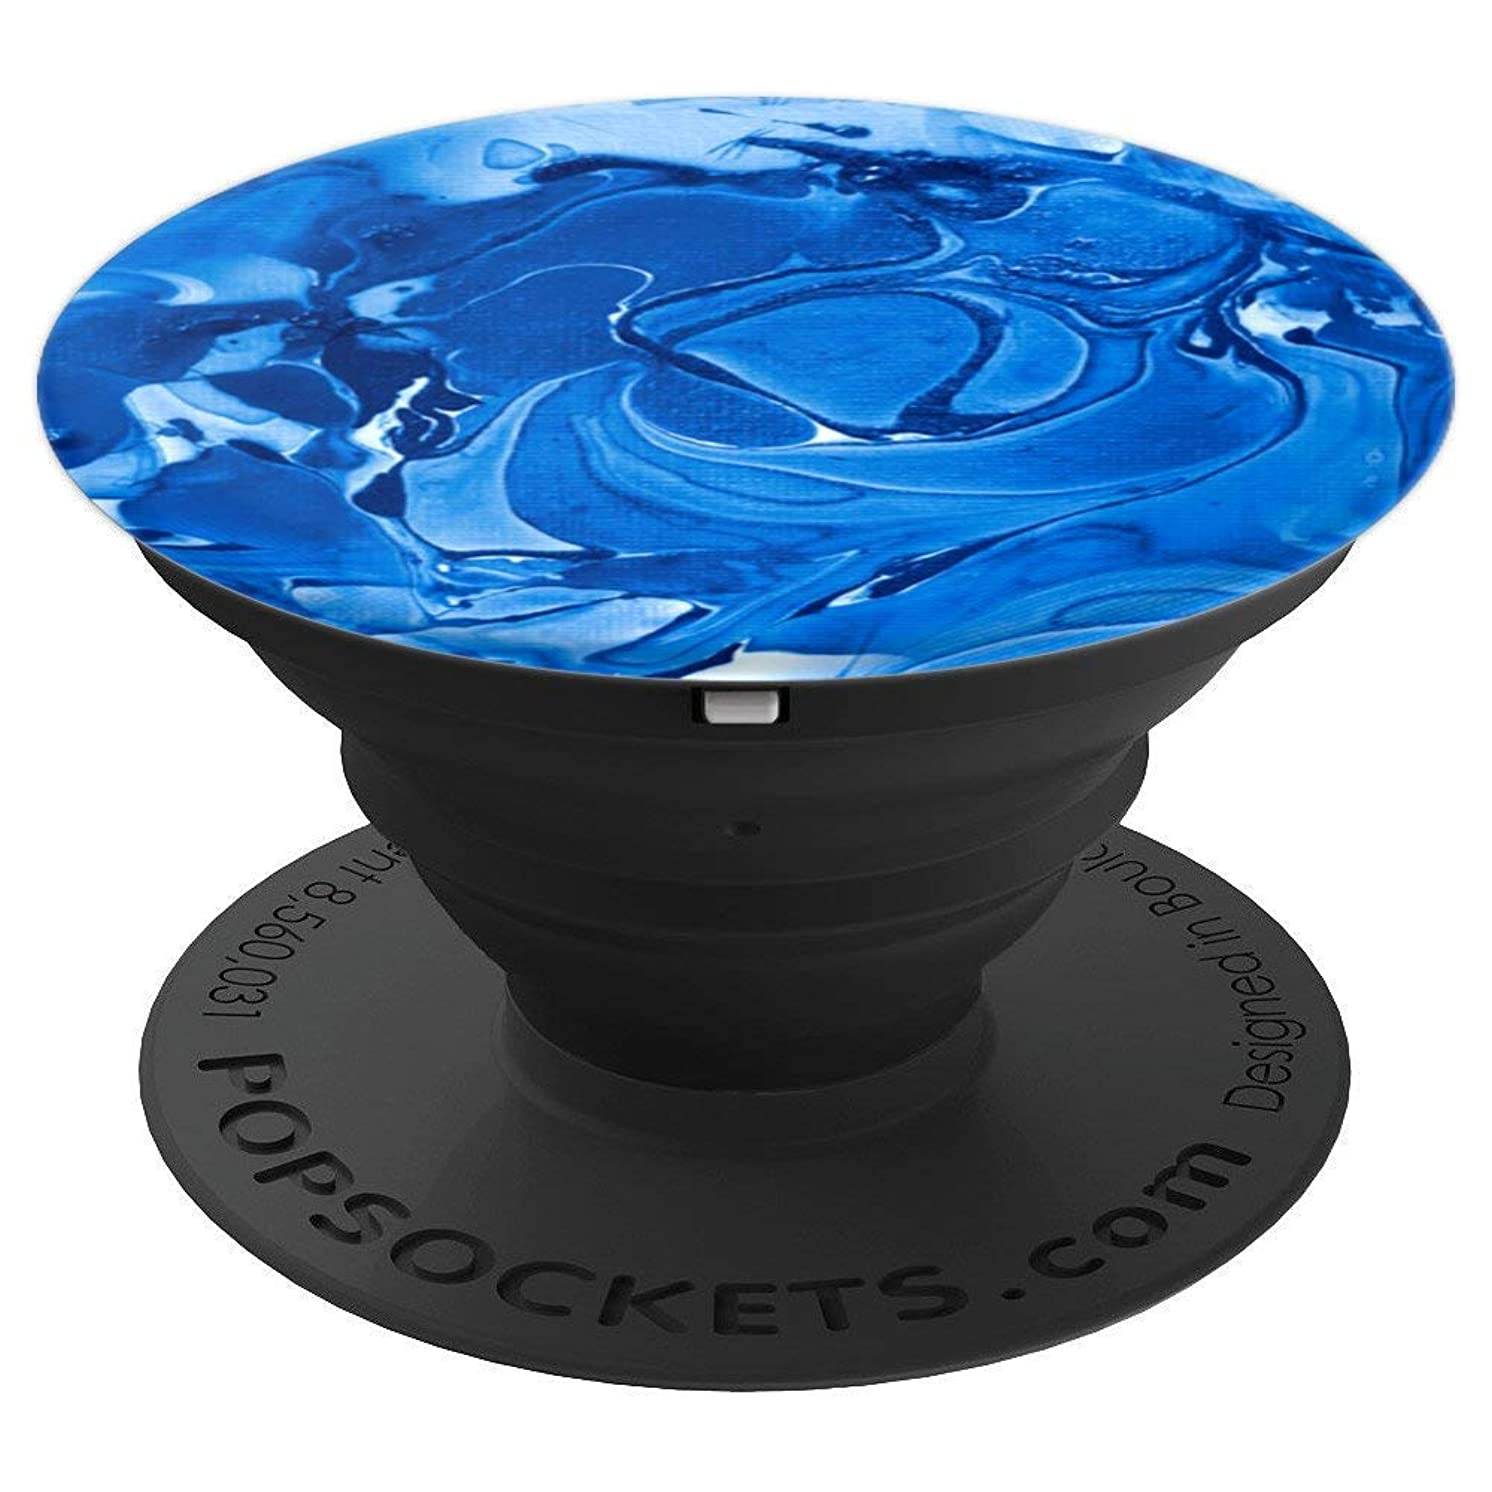 Blue Oil Paint Swirls - PopSockets Grip and Stand for Phones and Tablets